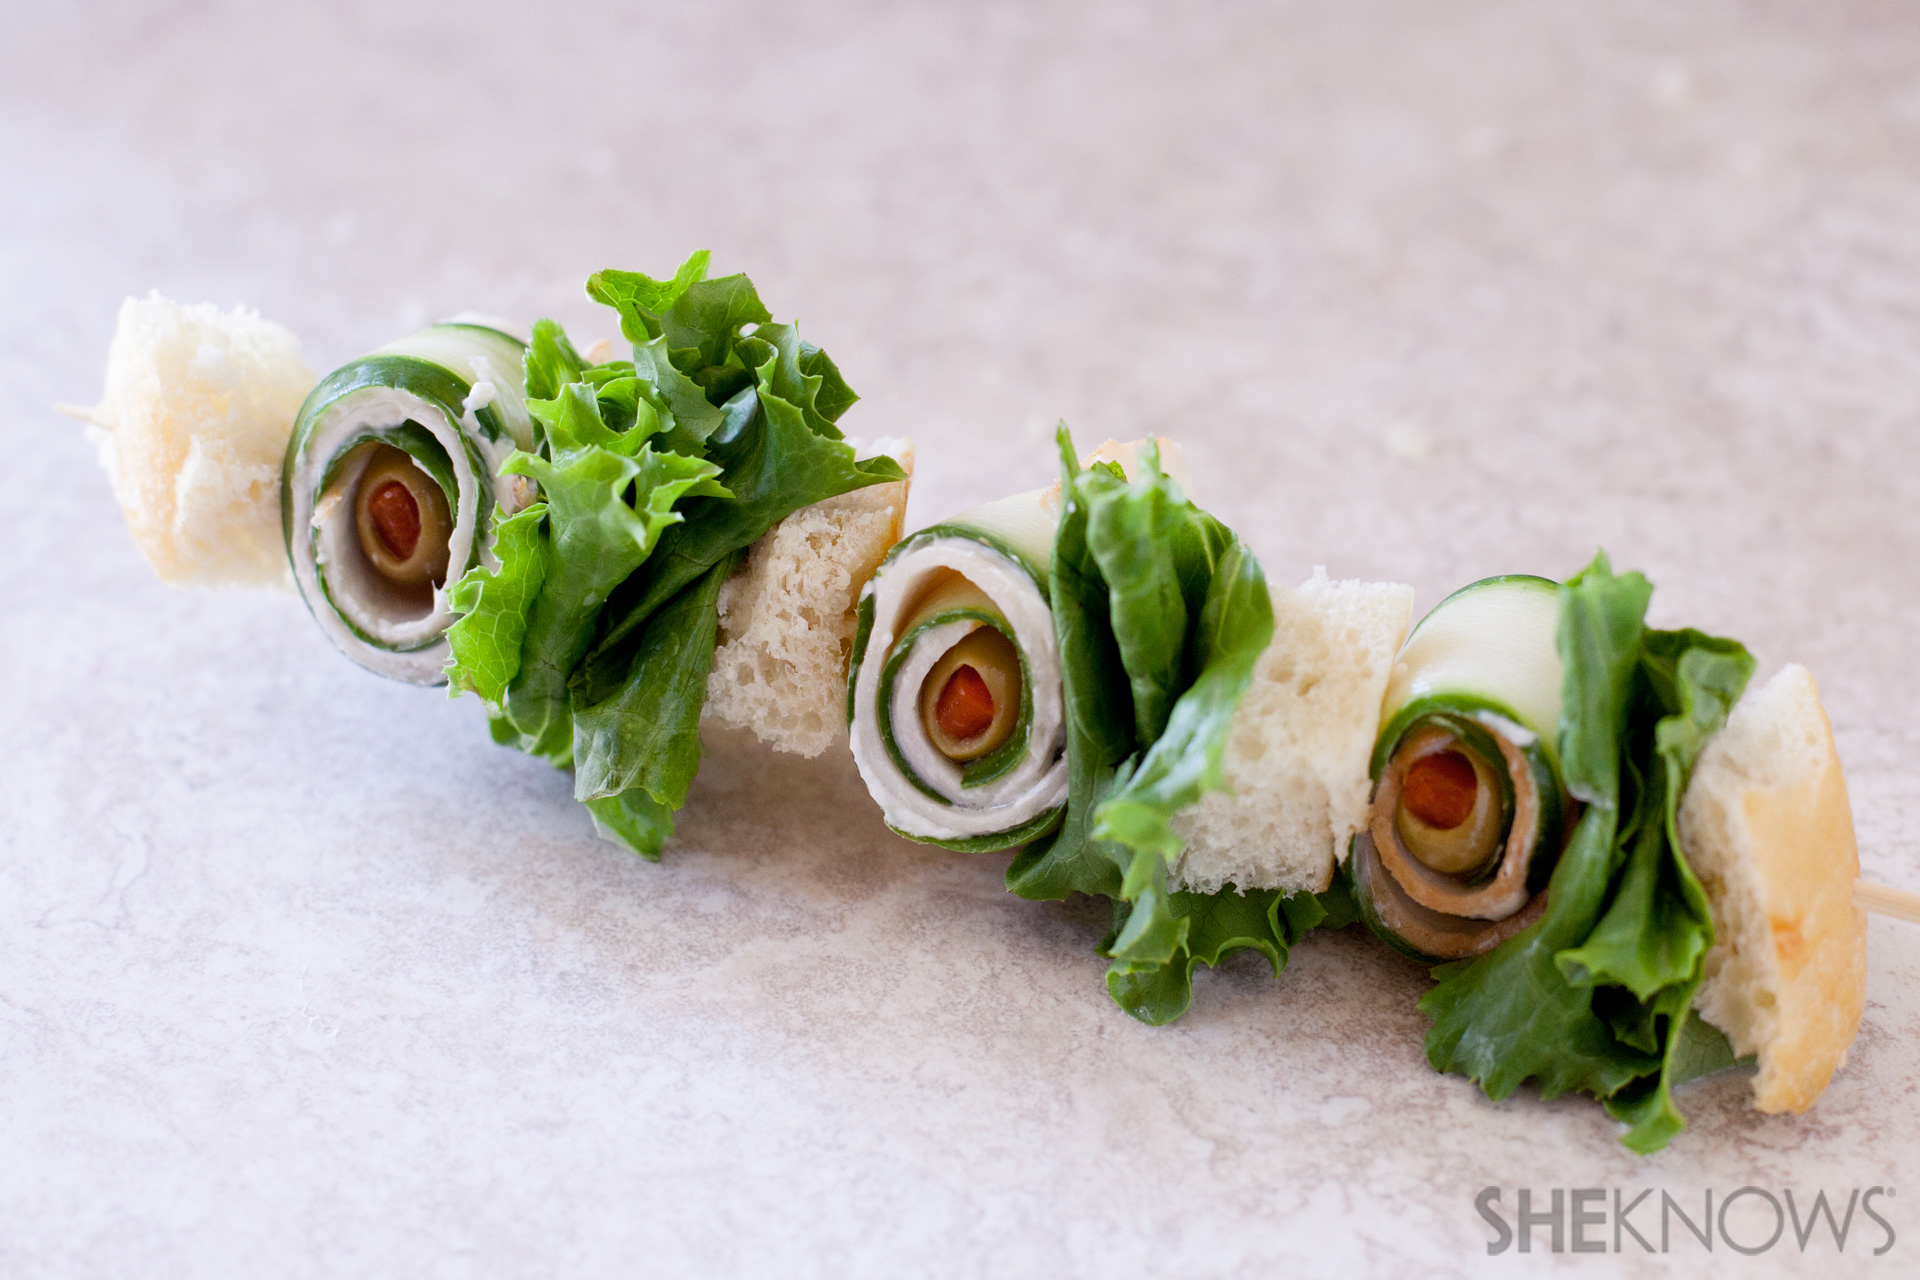 Fancy sandwich skewers